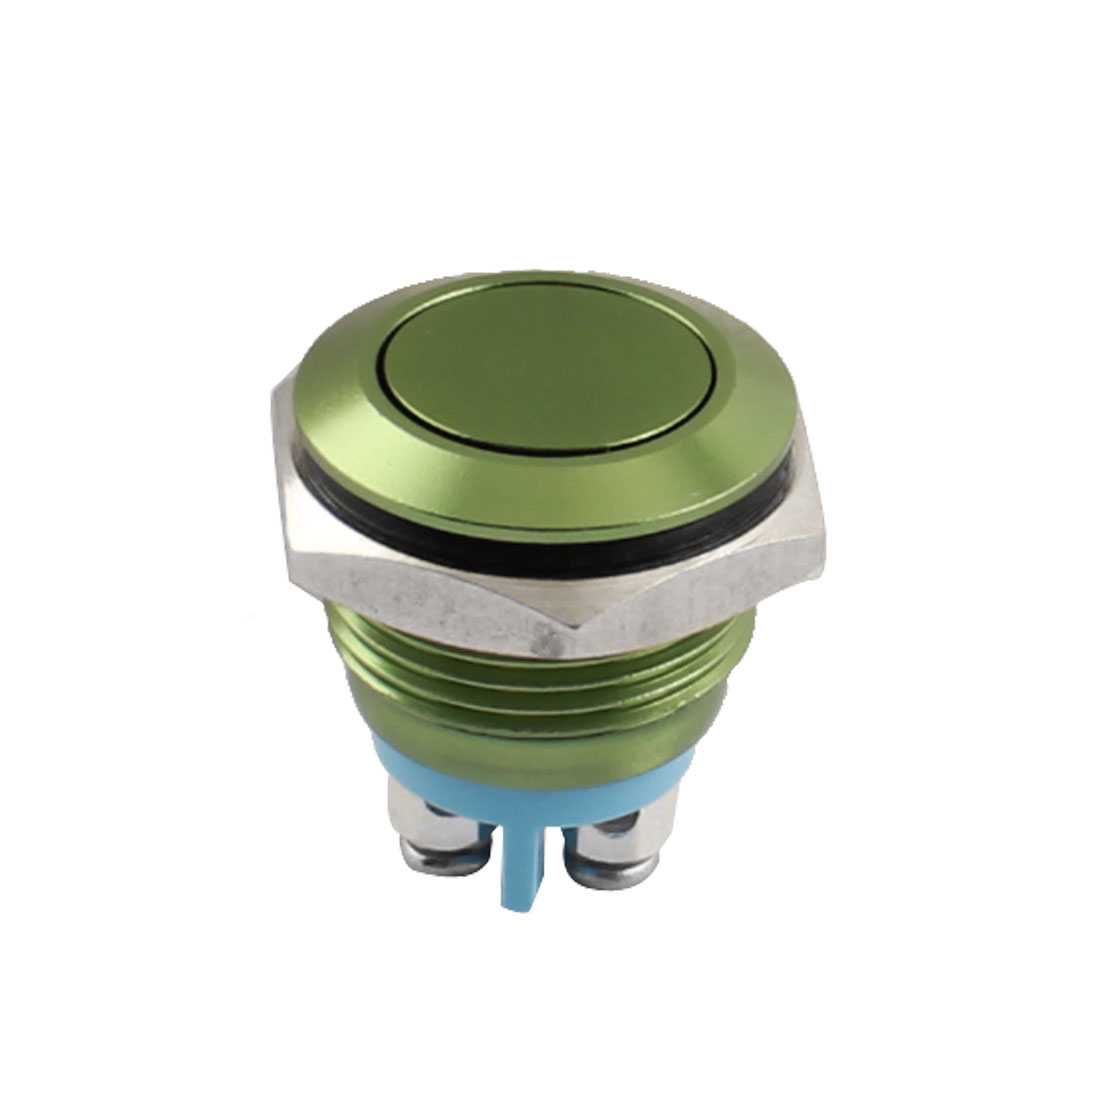 AC250V 3A 16mm Thread Panel Mount SPST Normal Open Momentary Control Green Metal Push Button Switch